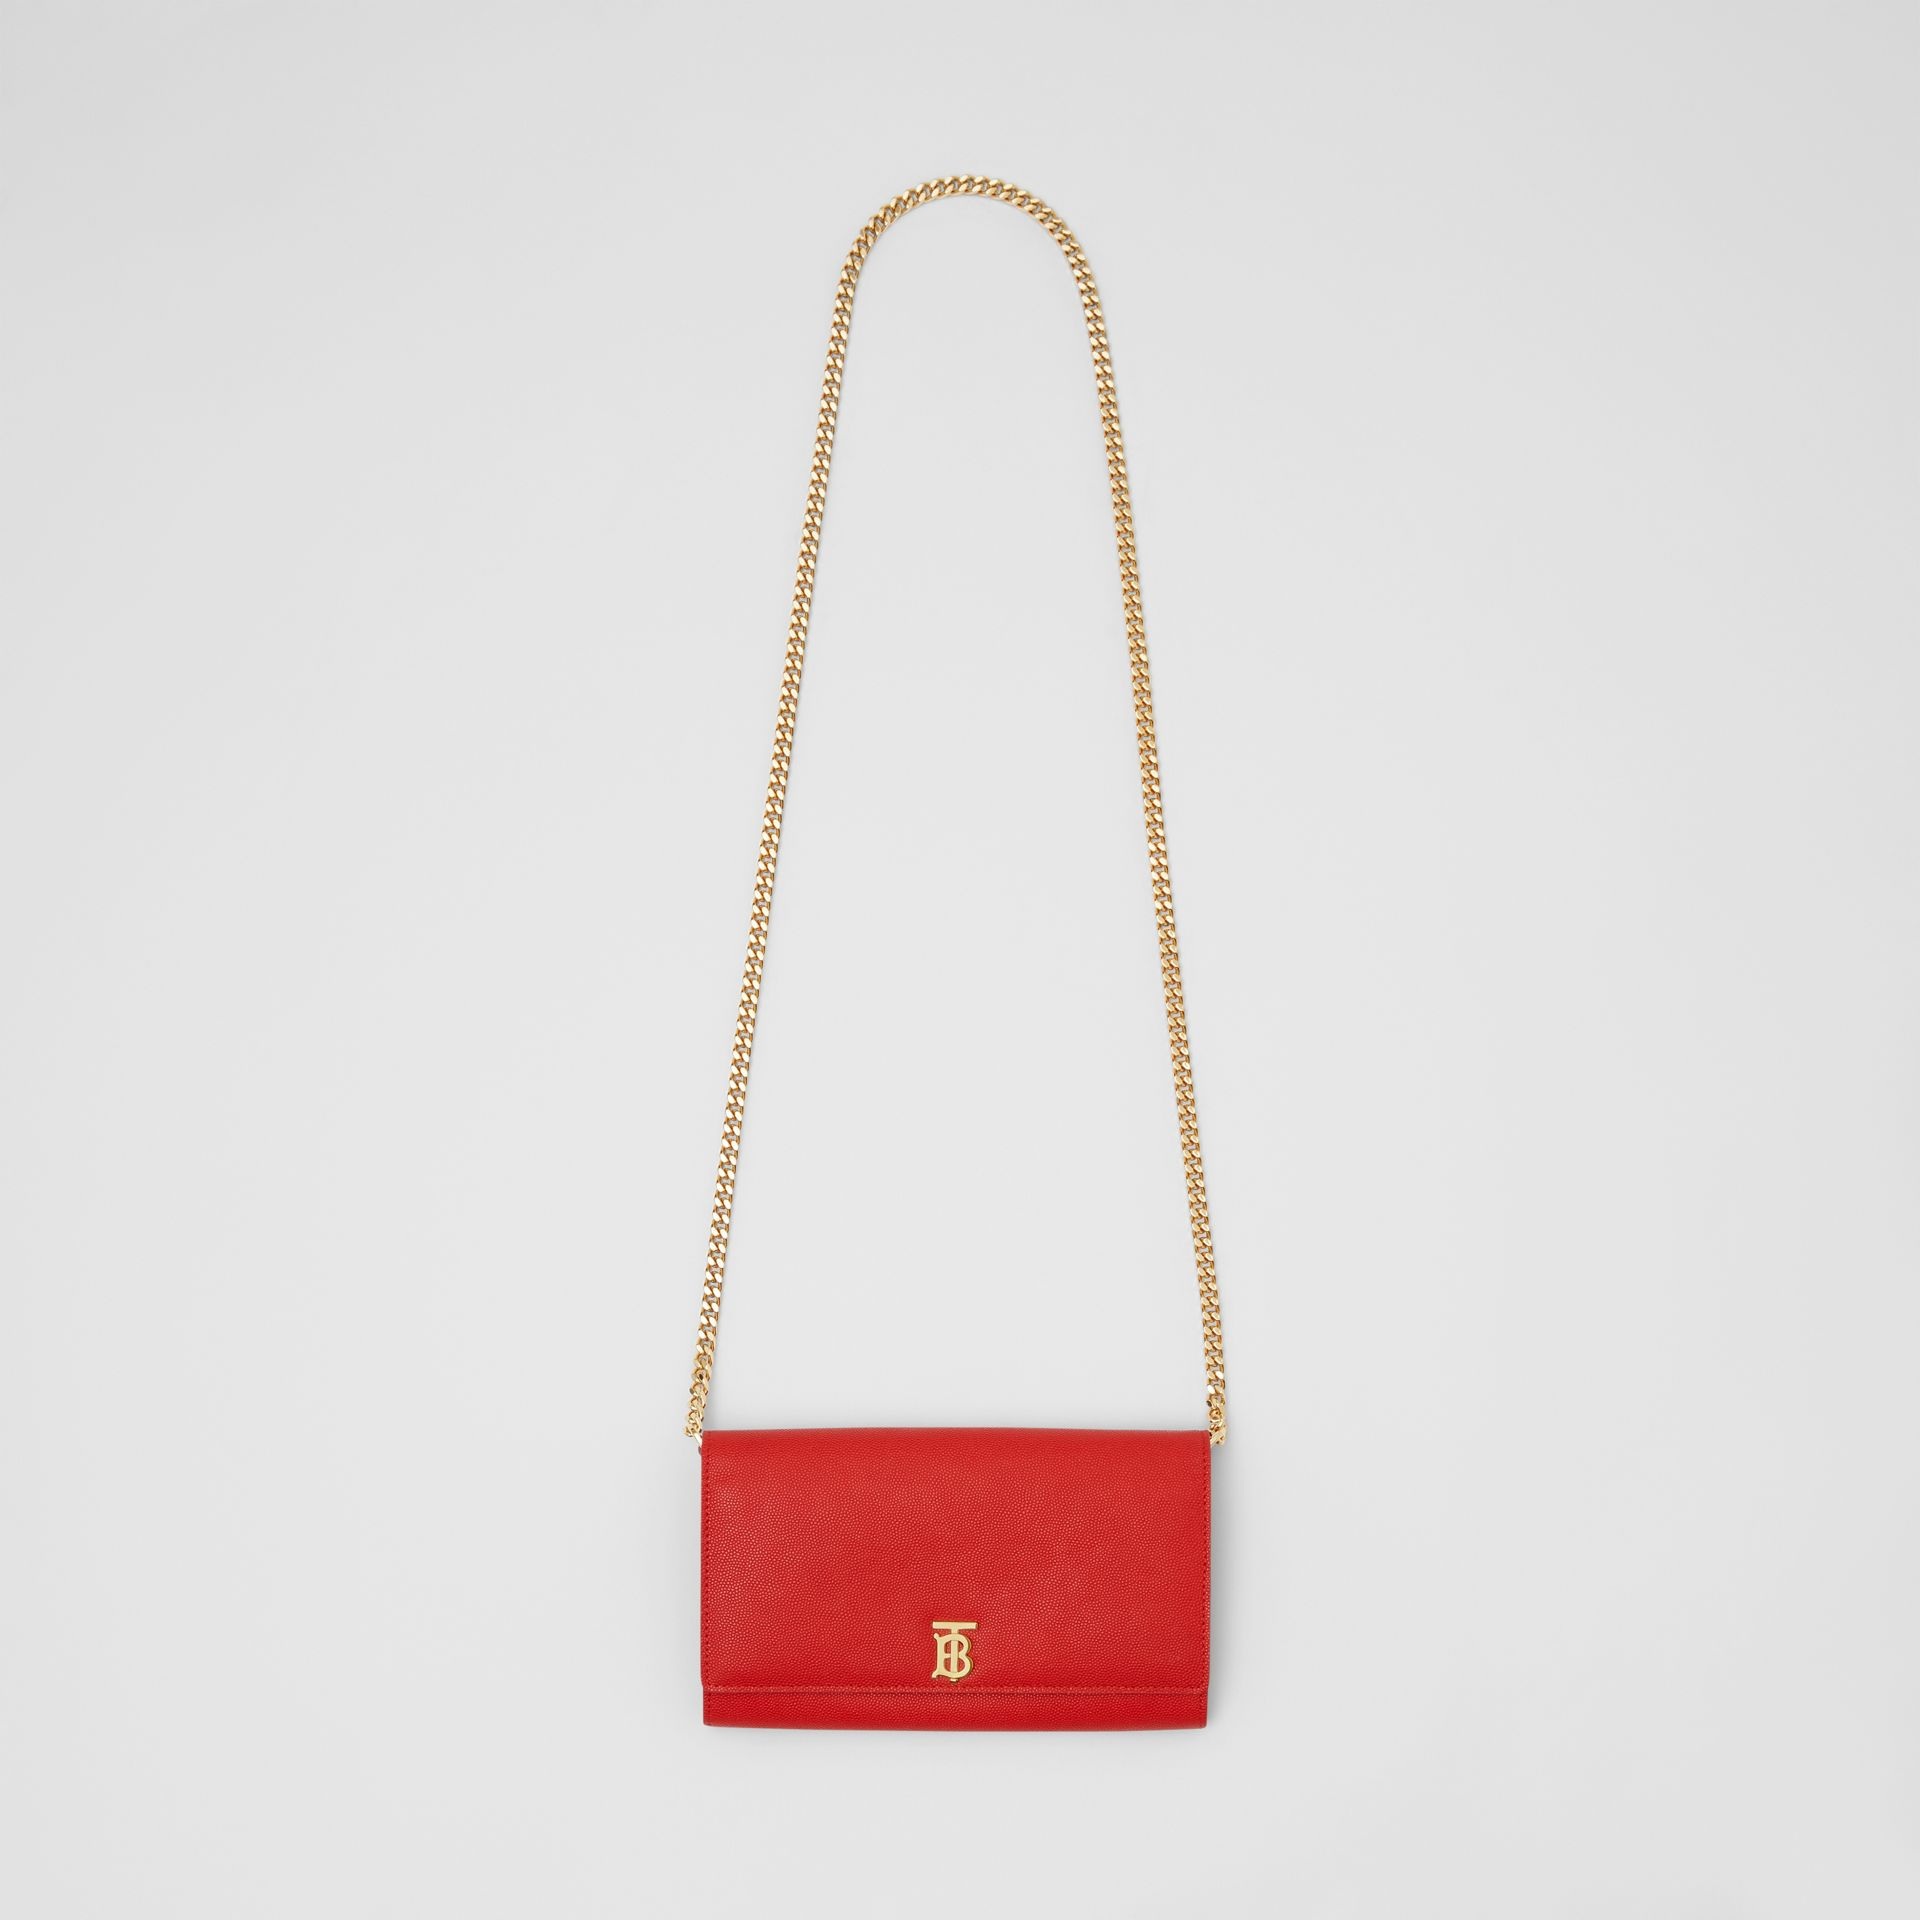 Portefeuille en cuir Monogram avec sangle amovible (Rouge Vif) - Femme | Burberry - photo de la galerie 2